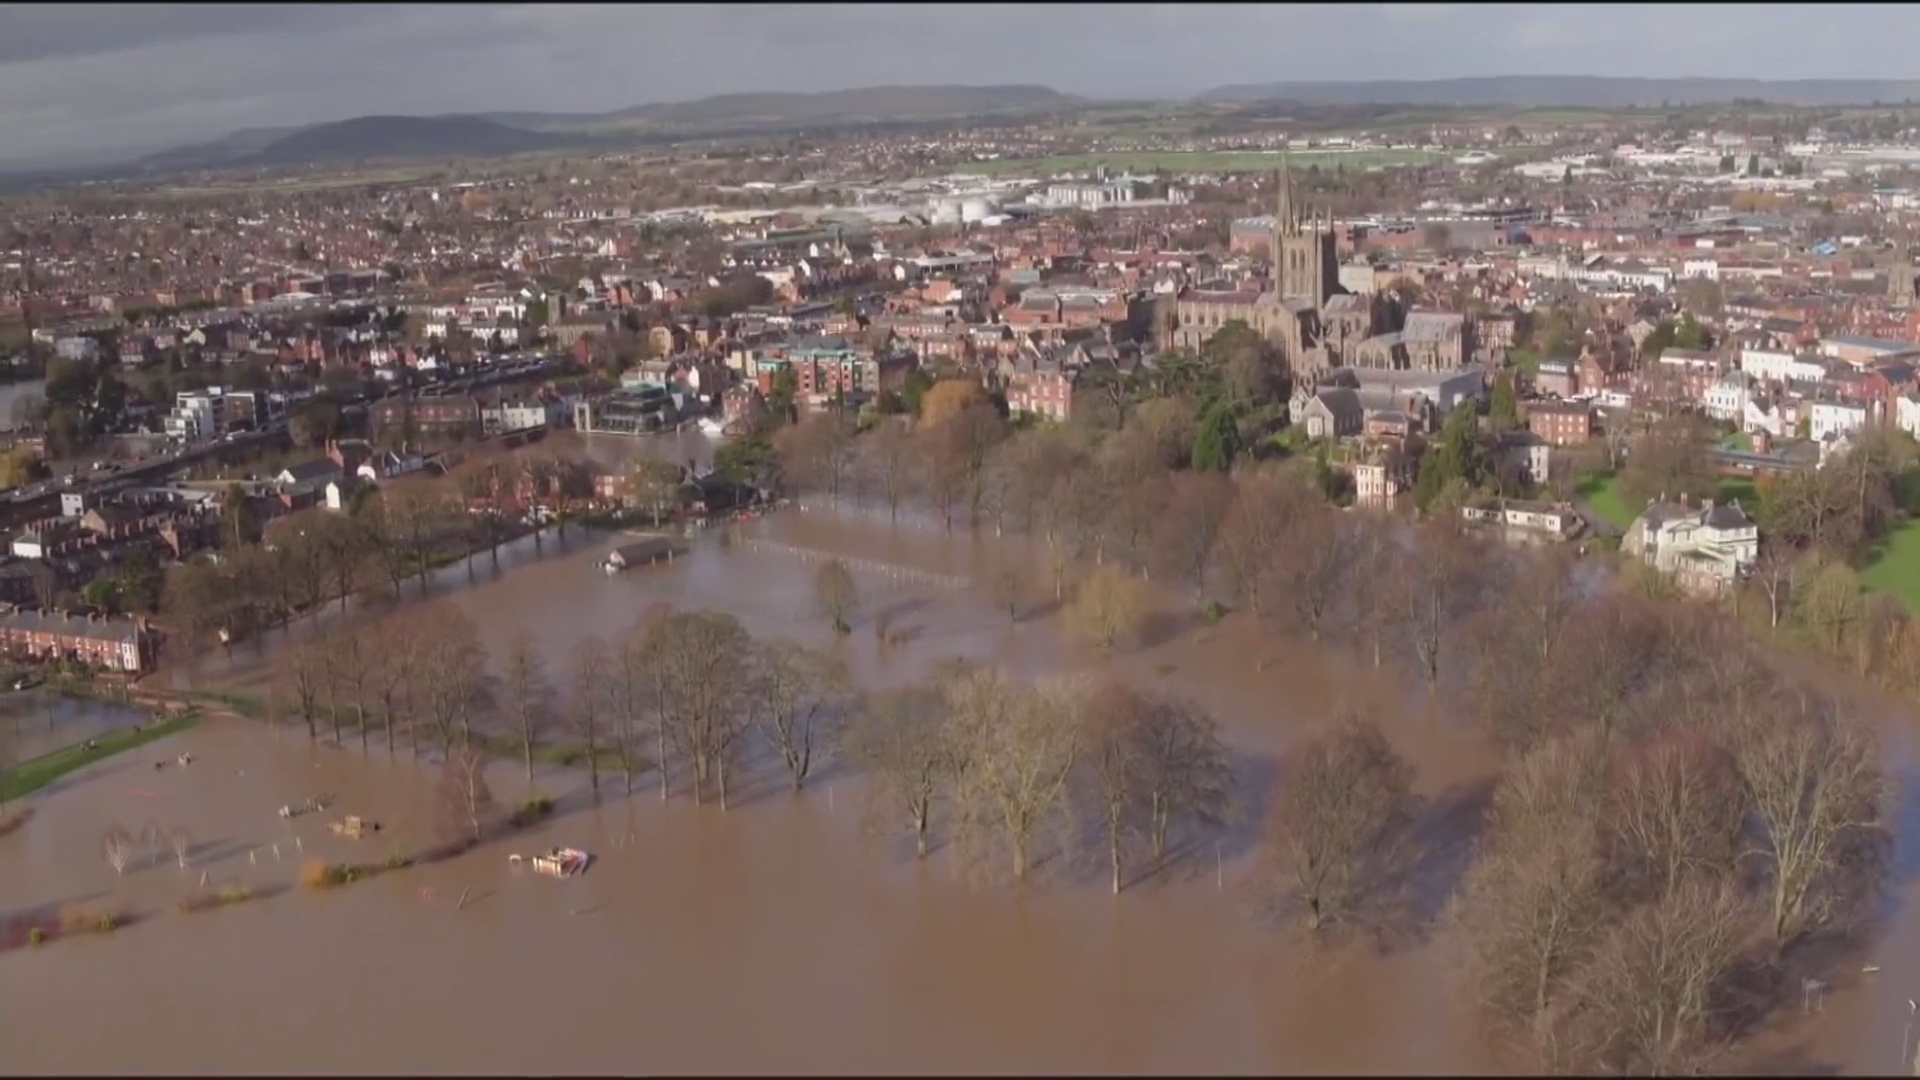 Storm Dennis: severe flooding continues - channel 4